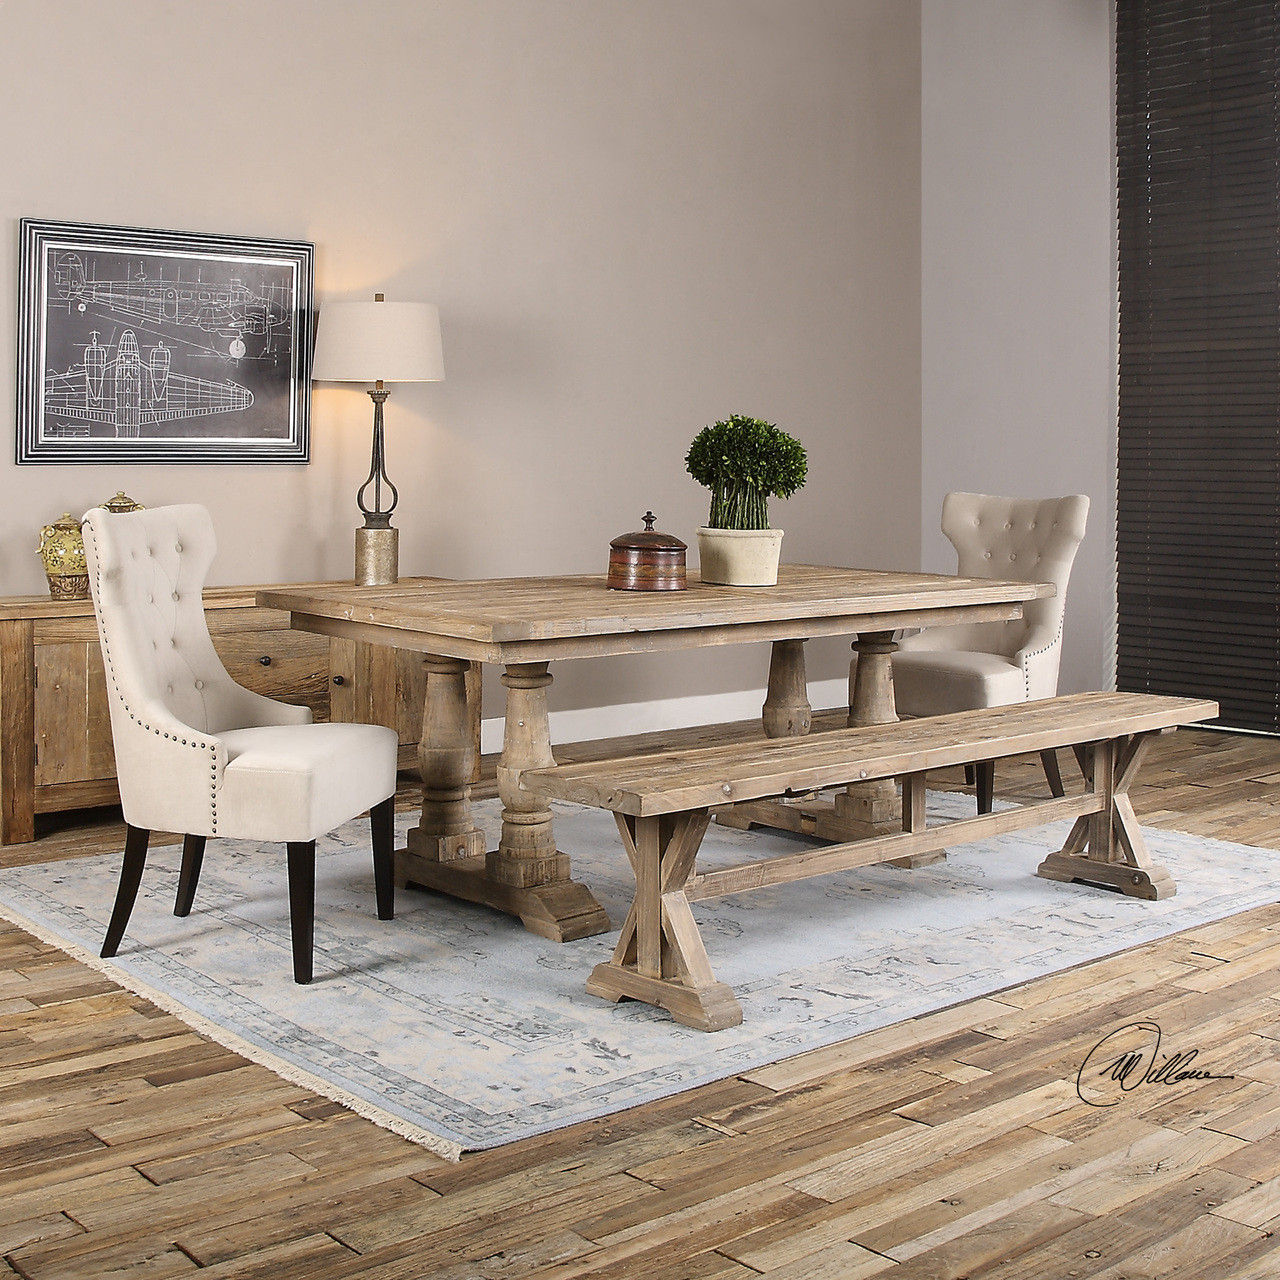 Salvaged Rustic Wood Trestle Dining Bench